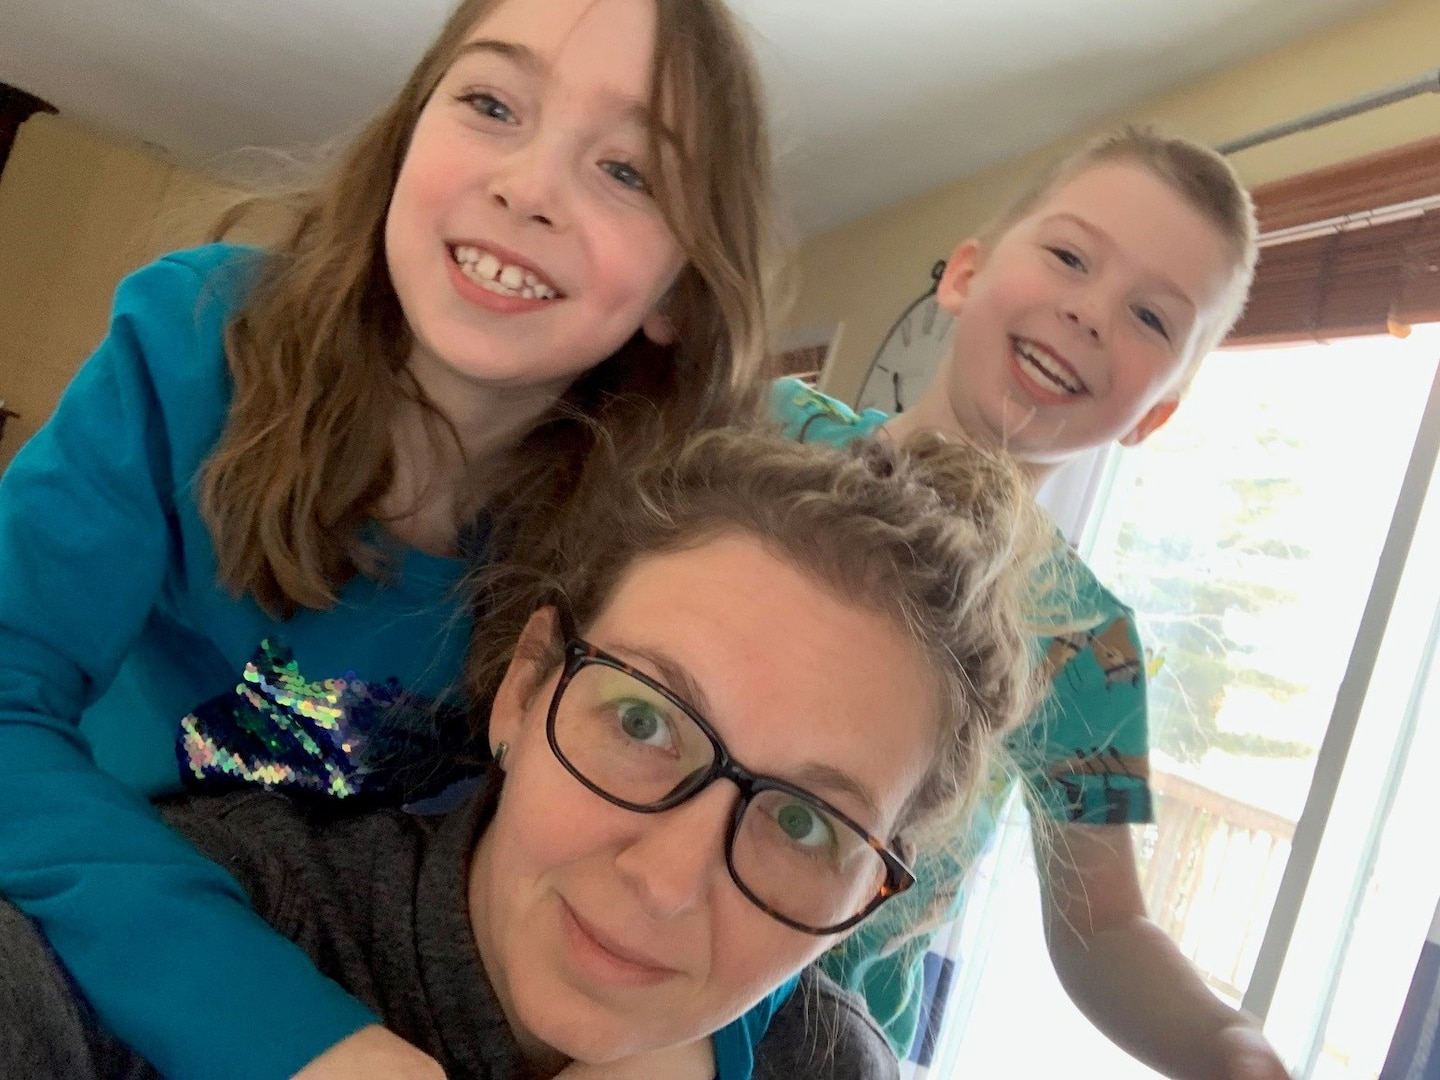 Mom with two kids hanging off her